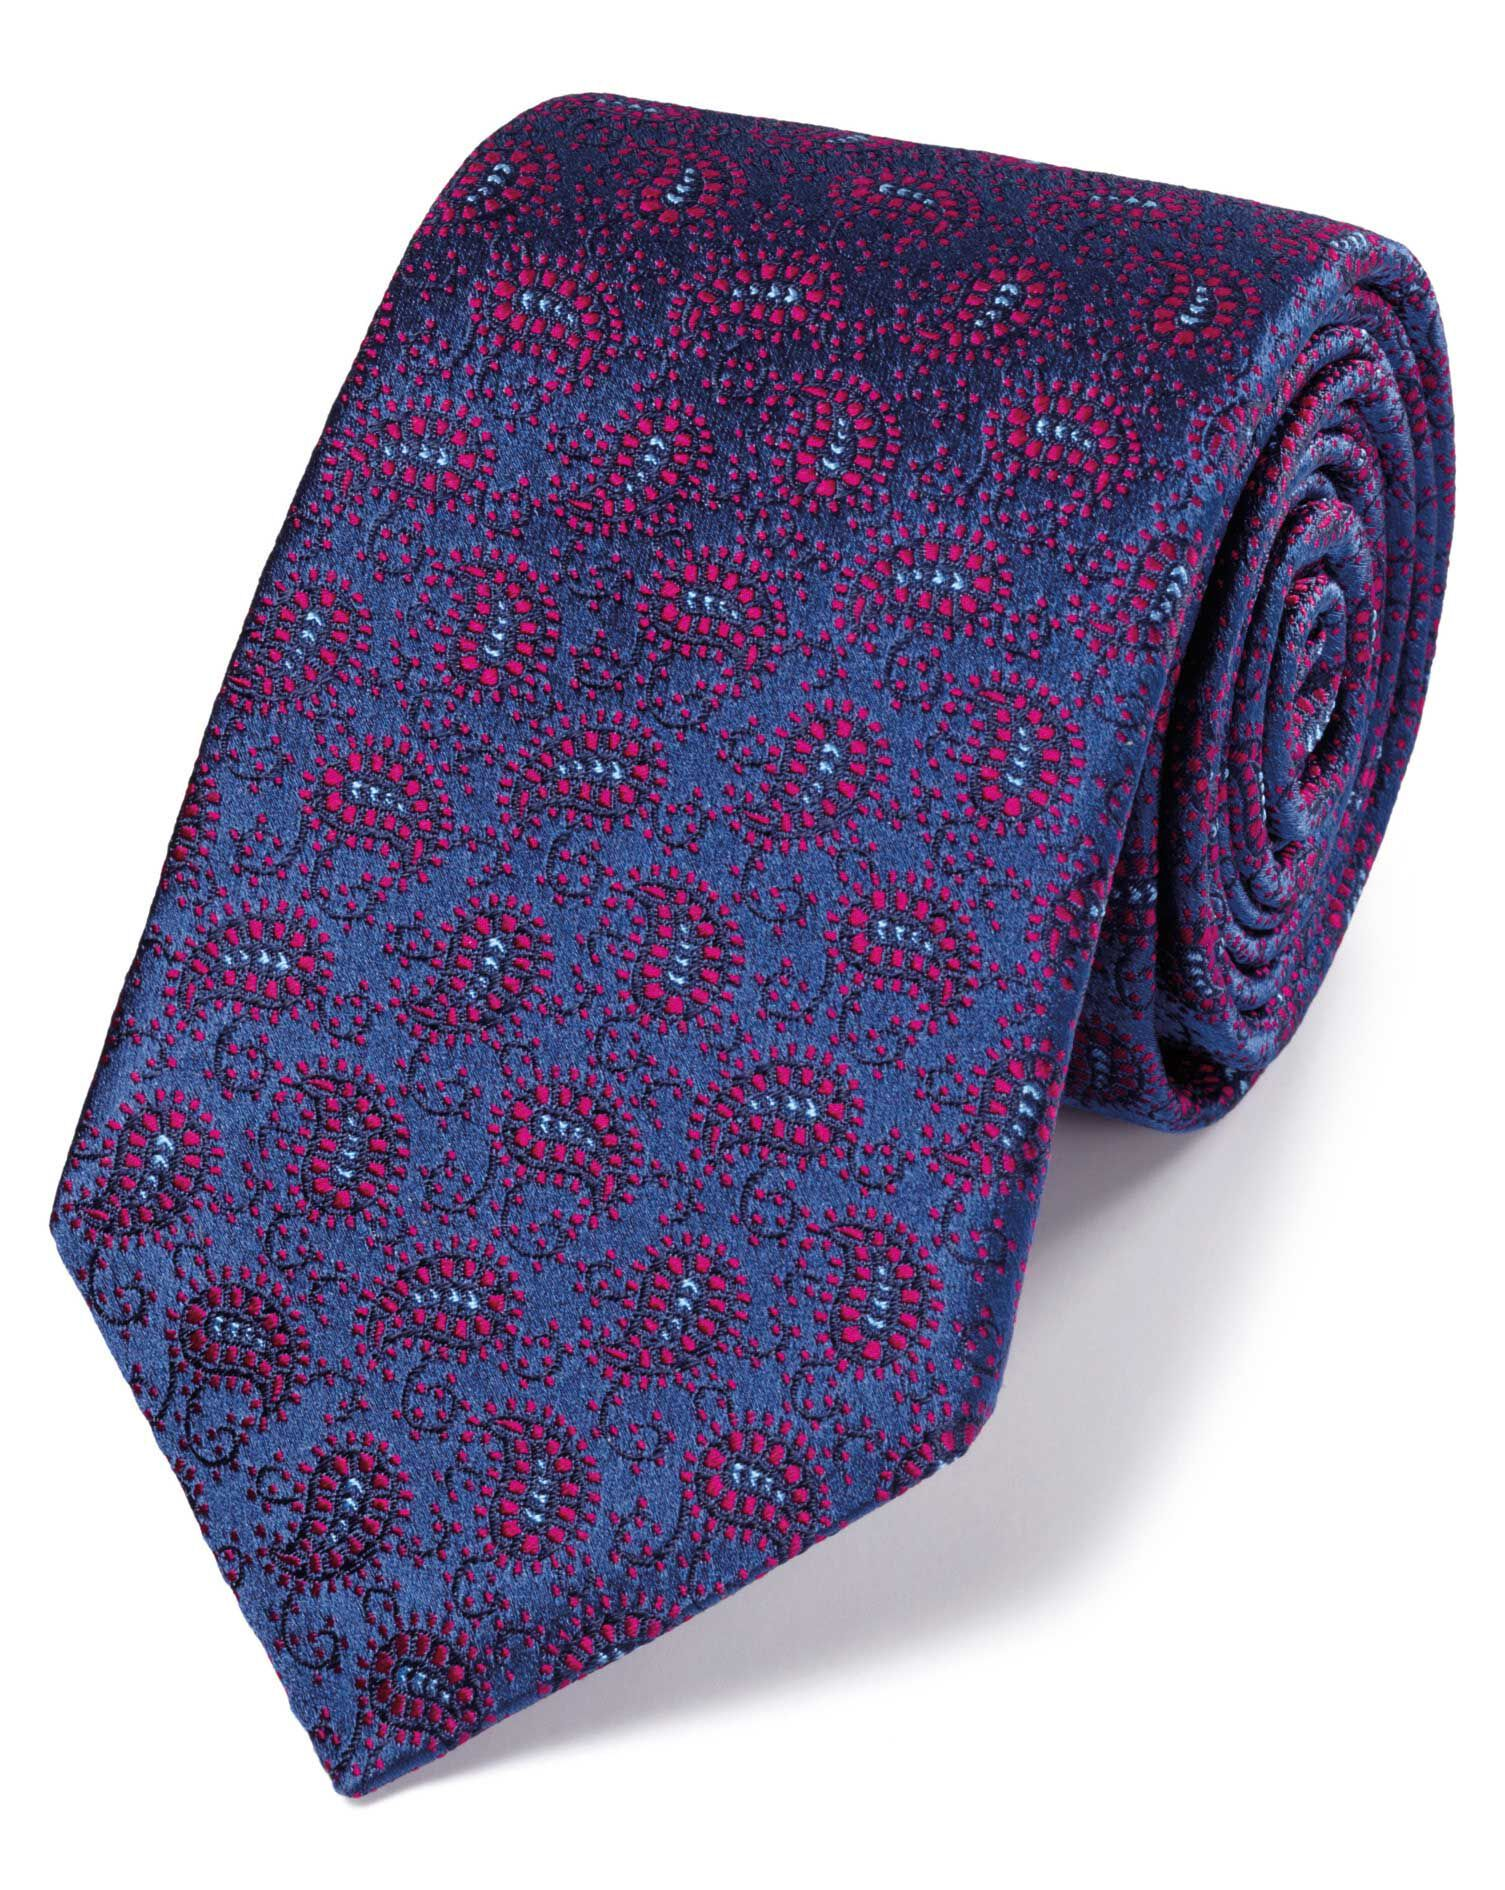 Blue and Berry Silk Vintage Paisley Luxury Tie Size OSFA by Charles Tyrwhitt